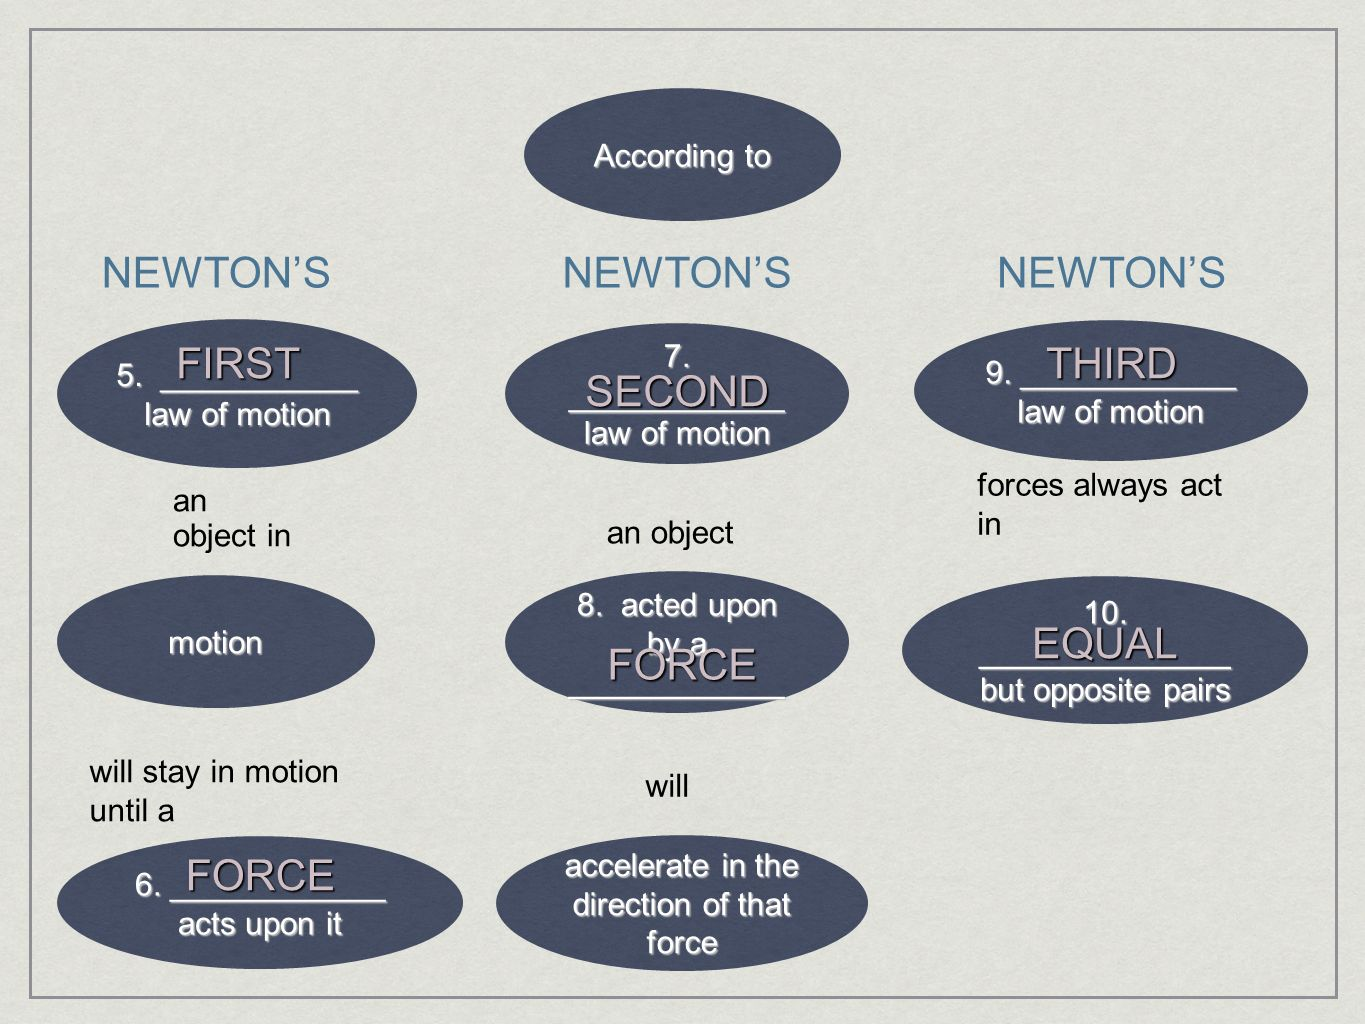 NEWTON'S NEWTON'S NEWTON'S FIRST THIRD SECOND EQUAL FORCE FORCE